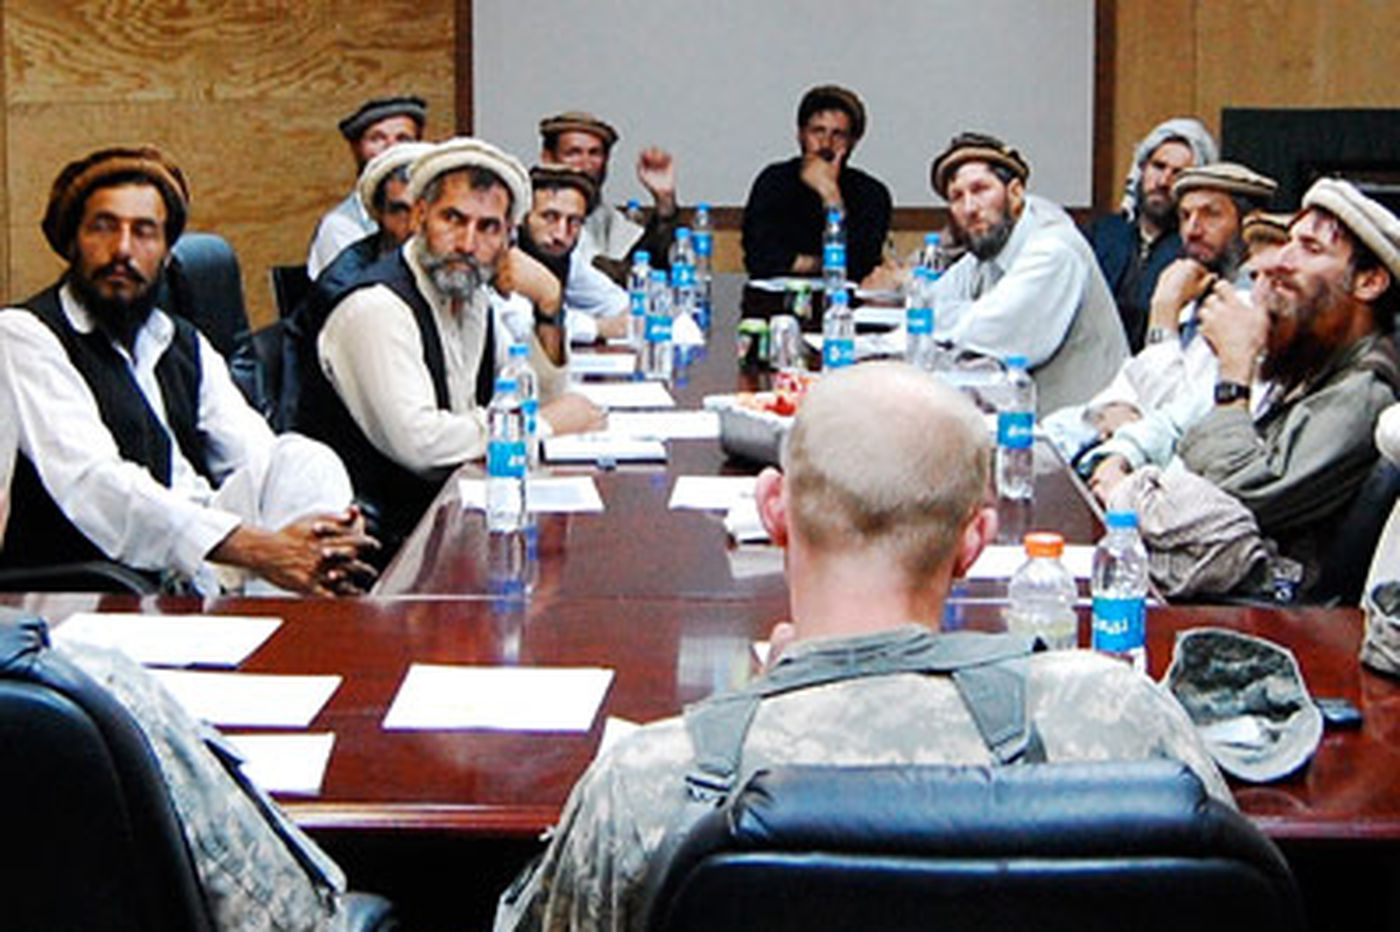 Mired in Afghanistan: Together, yet so far apart